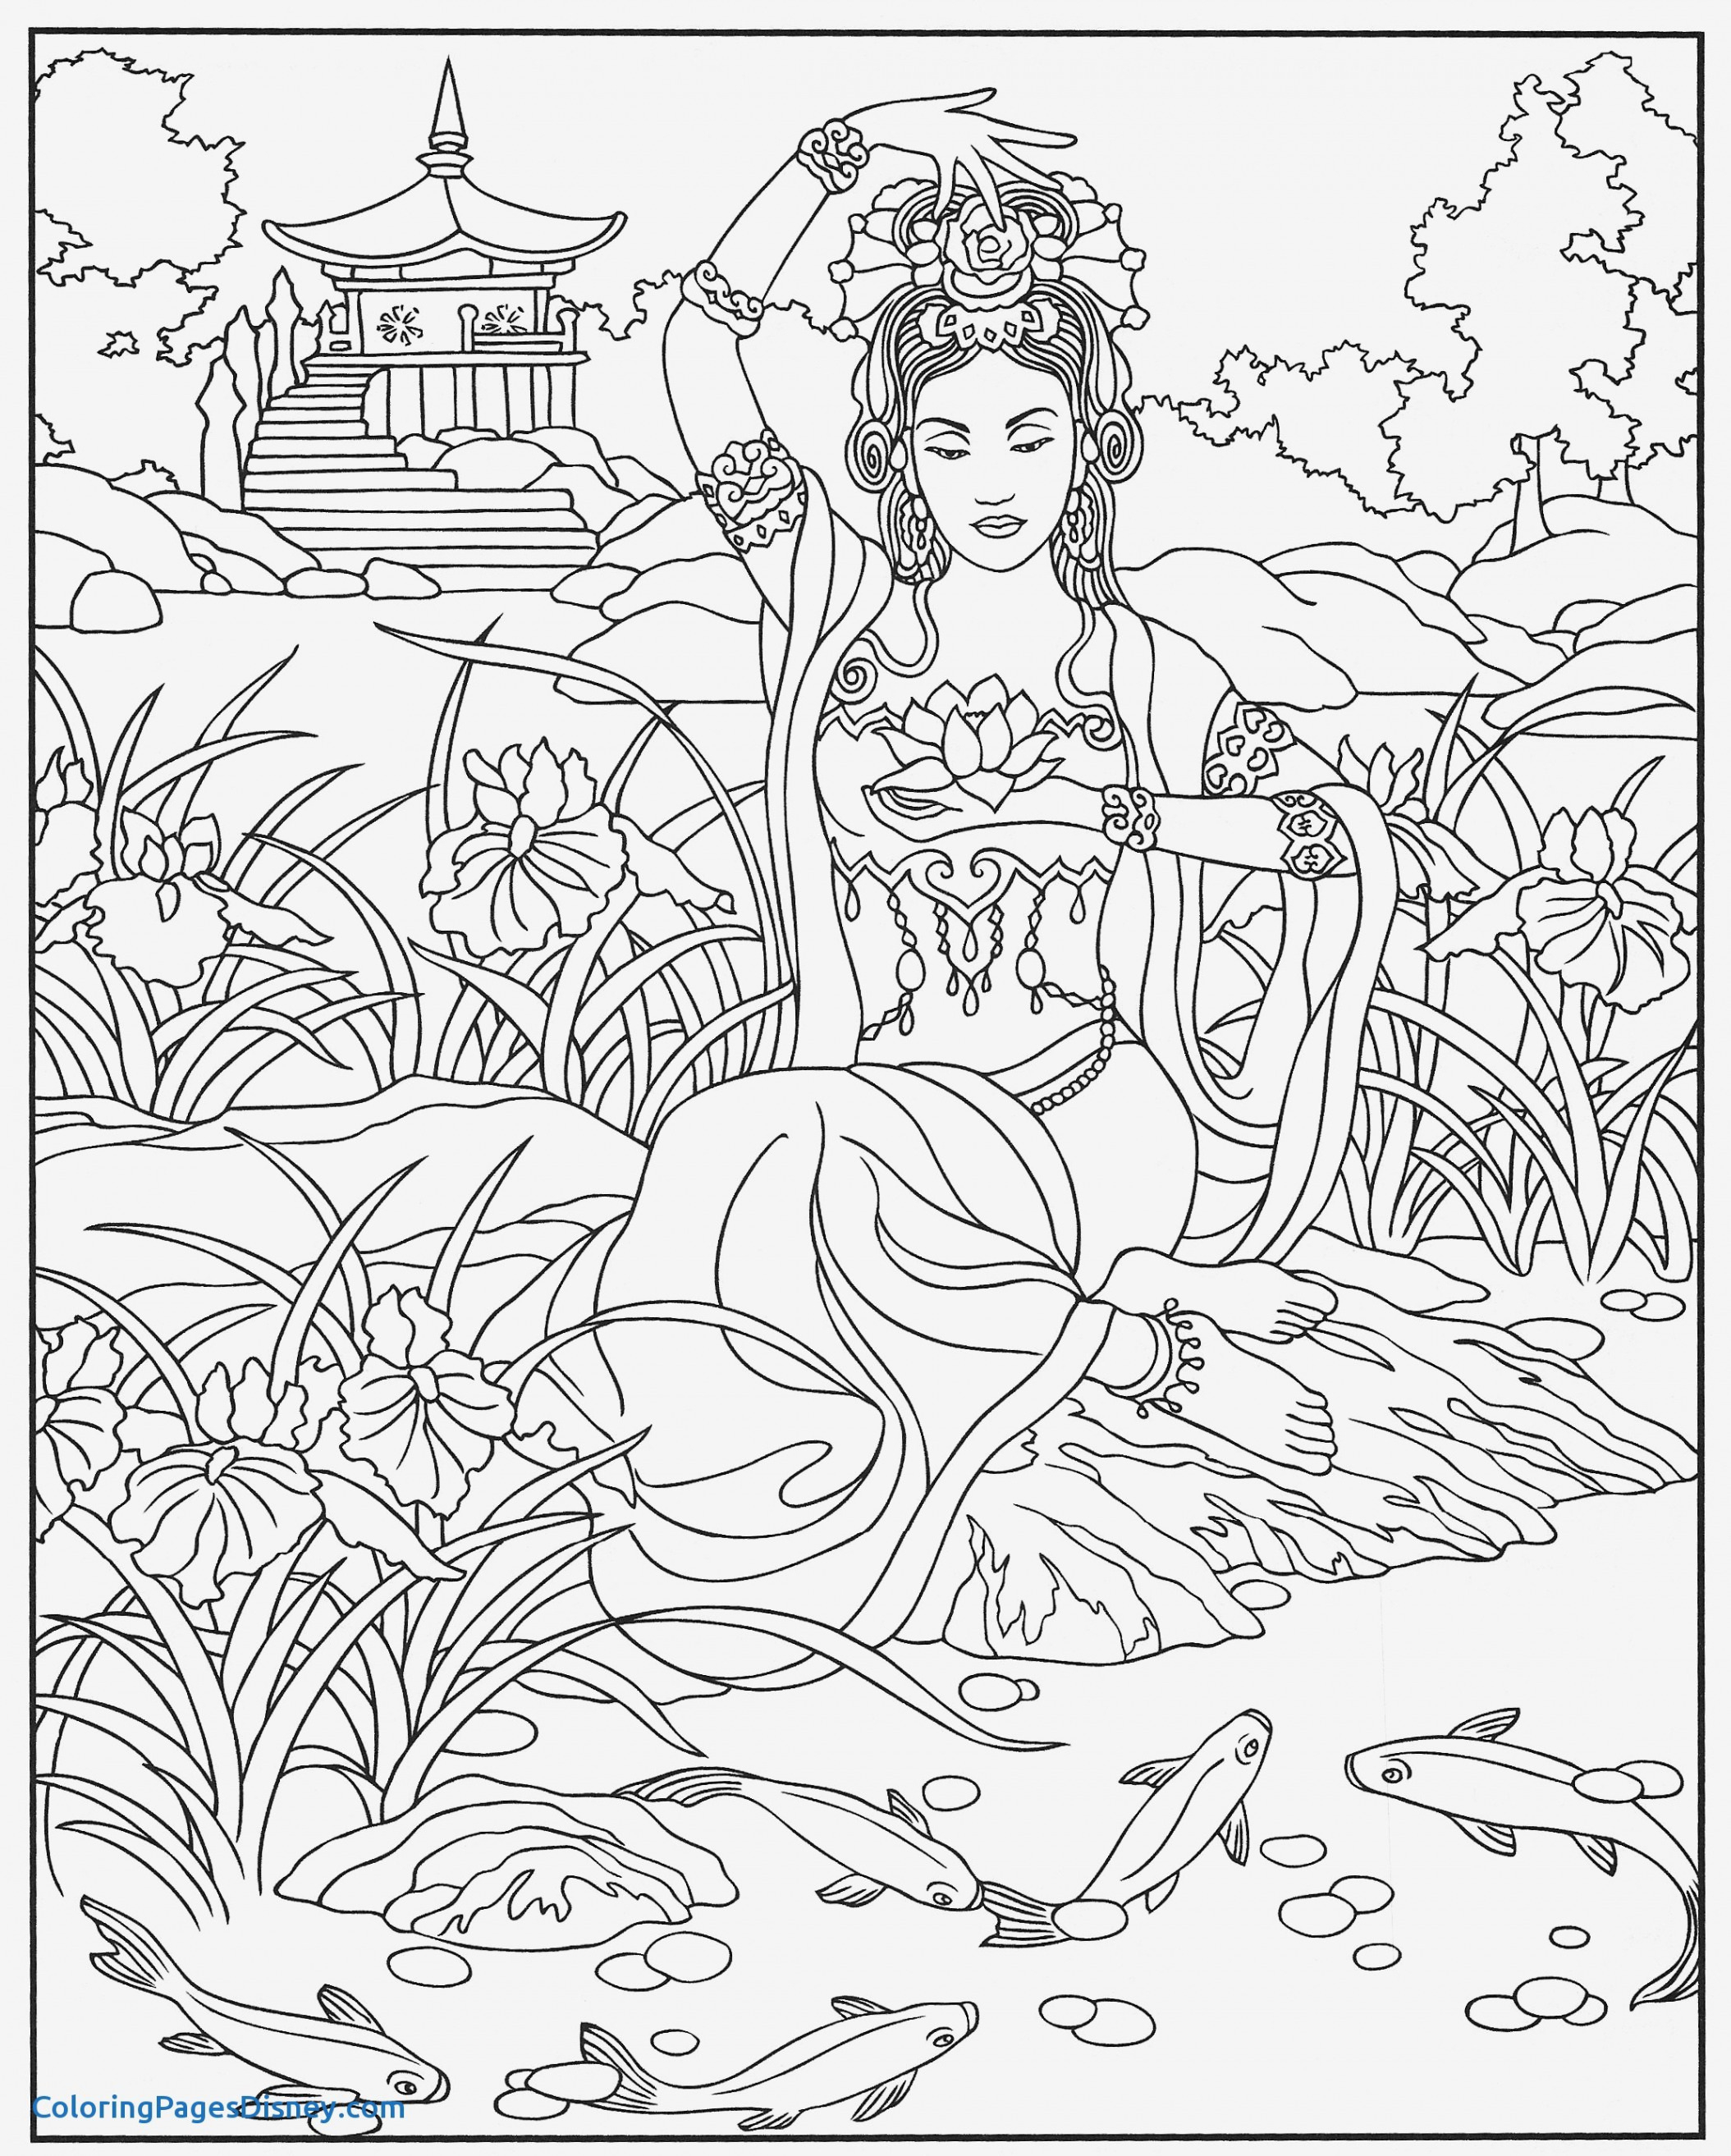 Coloring Pages Of Women  to Print 20h - Free For Children